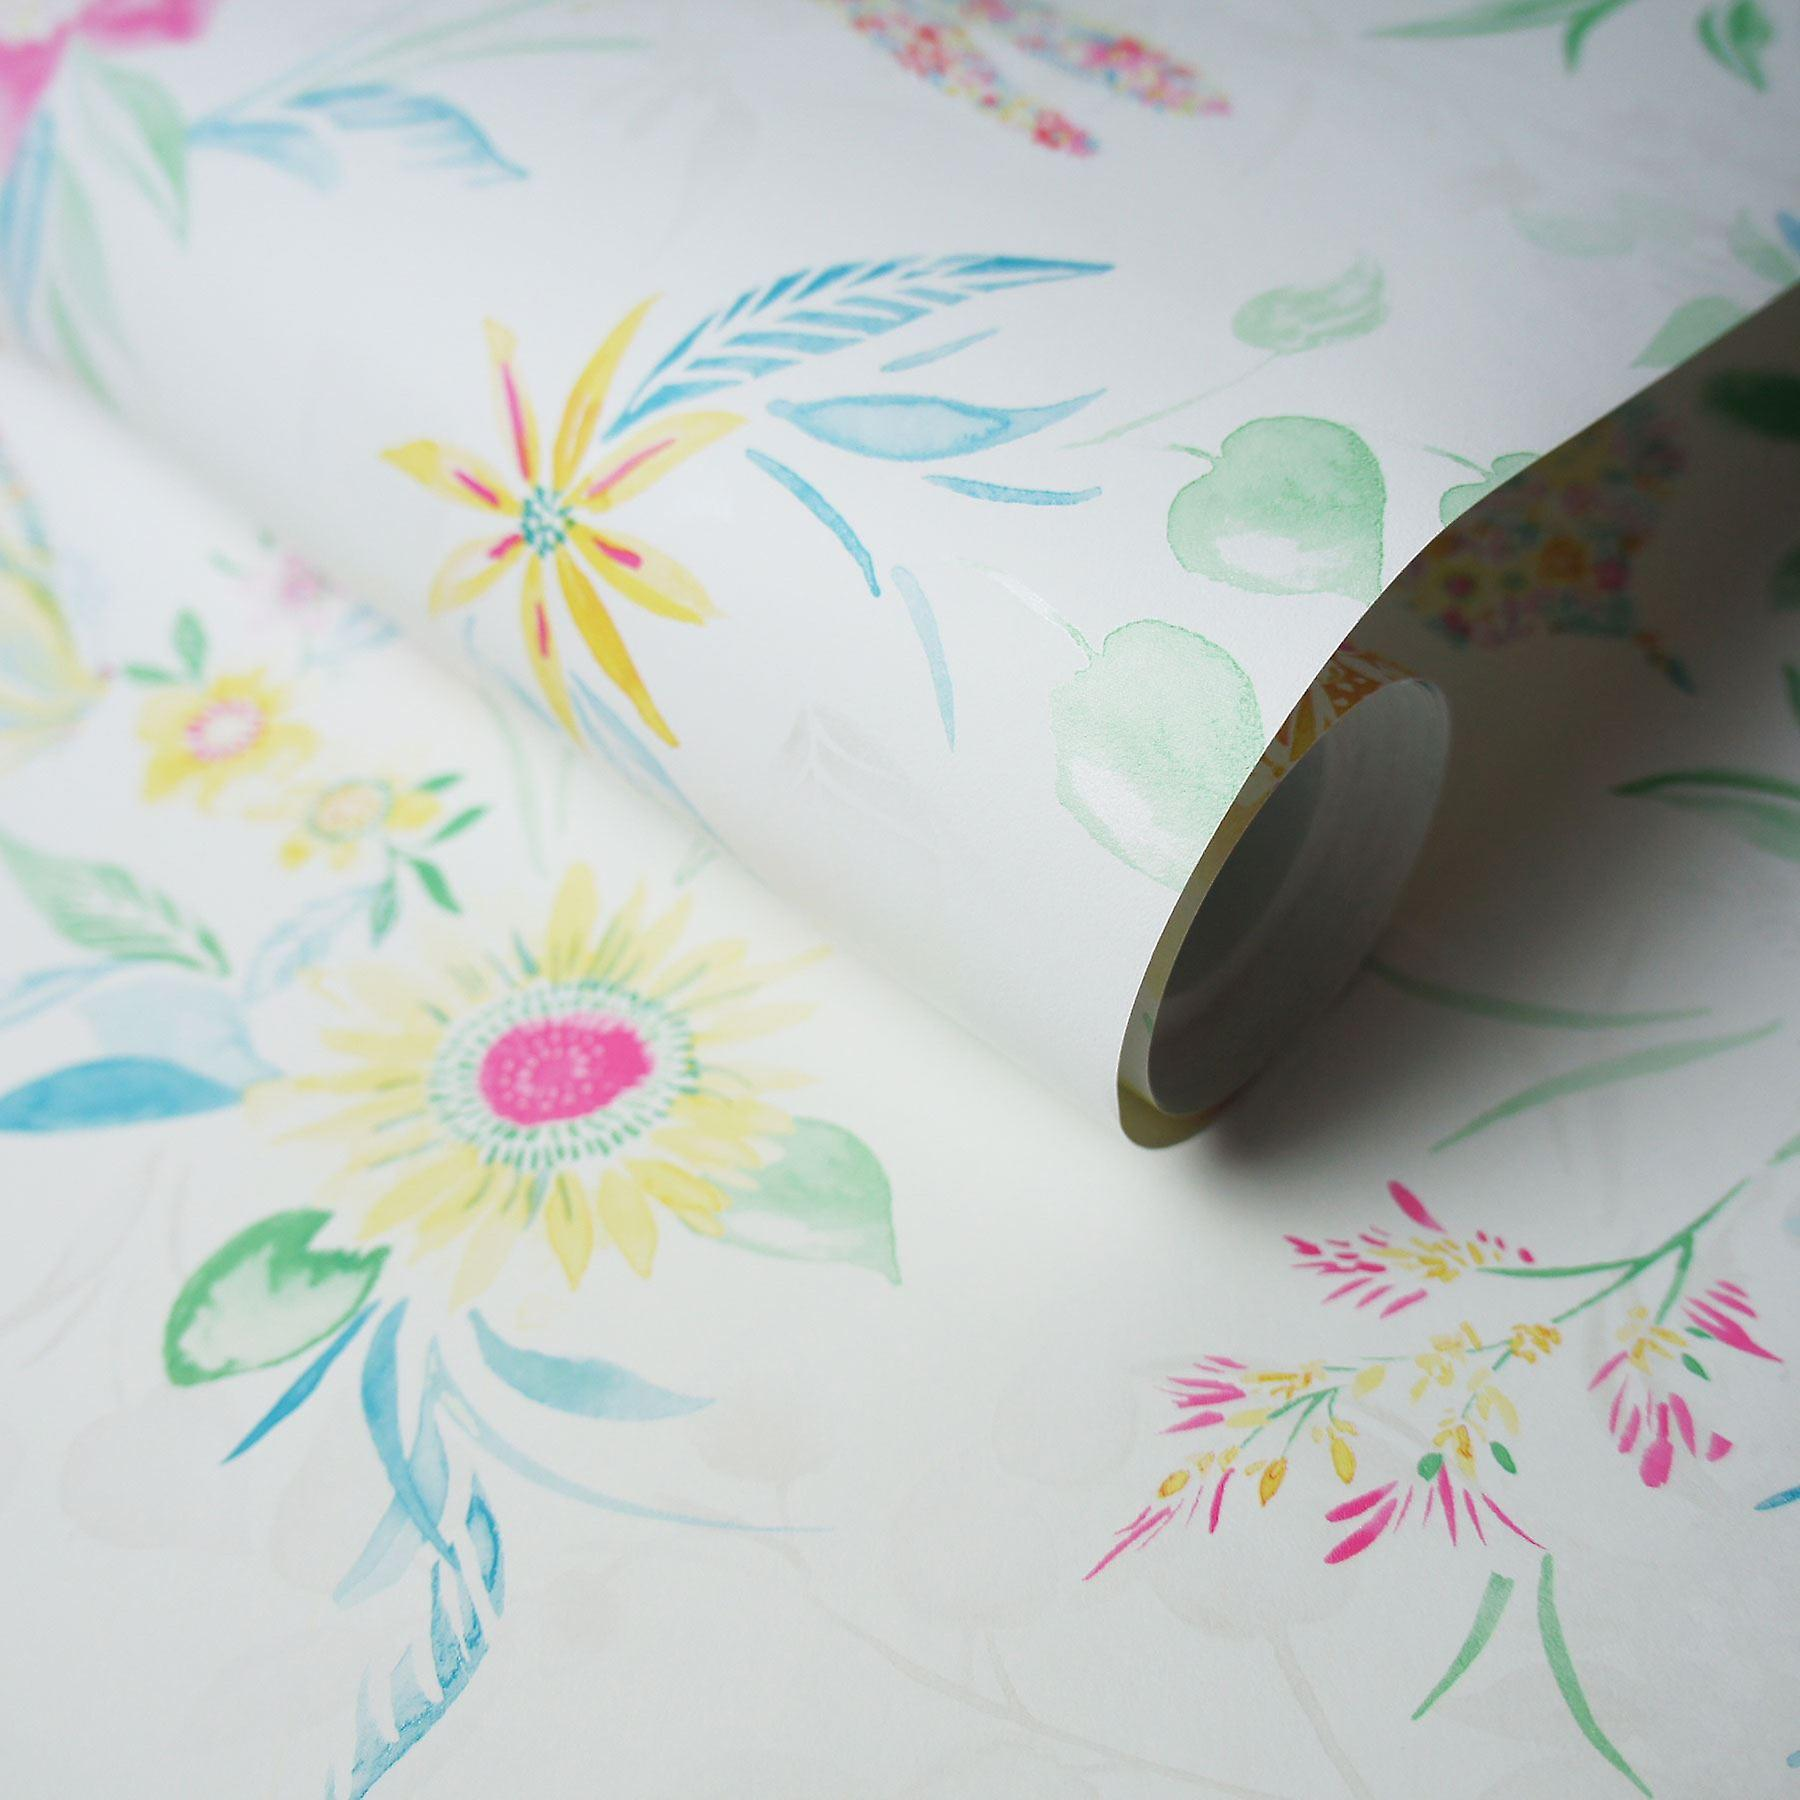 Watercolour Butterfly Wallpaper Flowers Floral Abstract Metallic